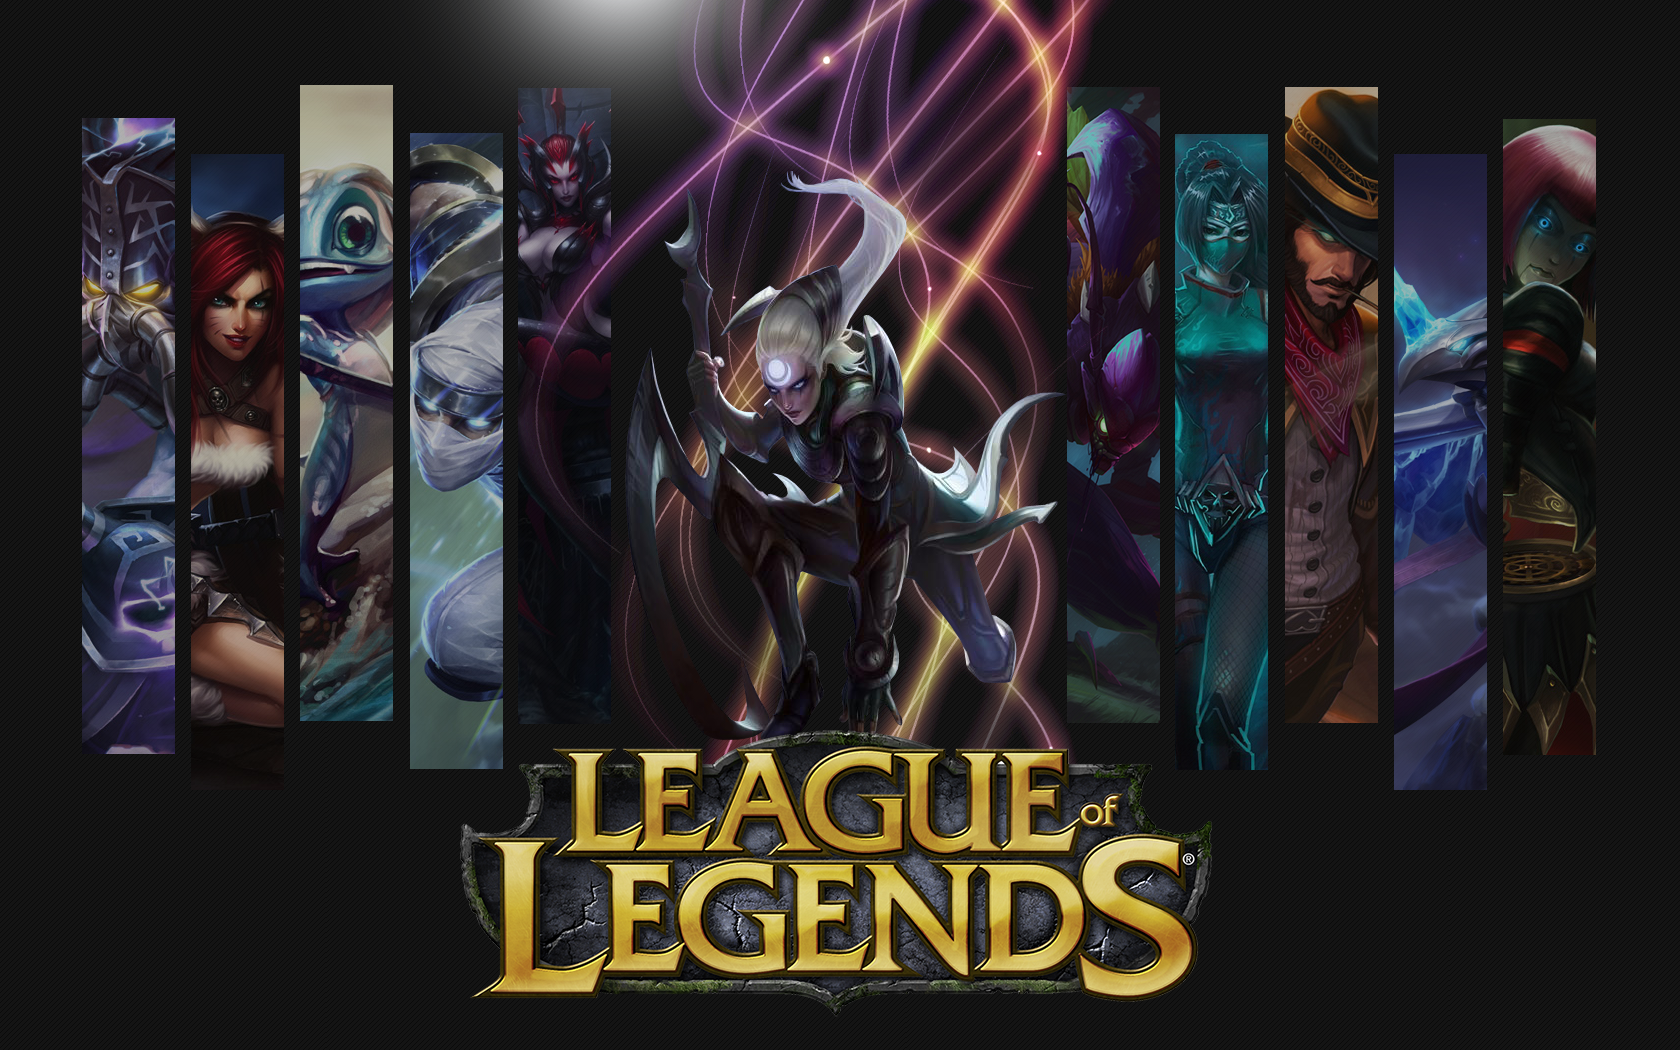 diana league of legends wallpaper by viciousblue on deviantart